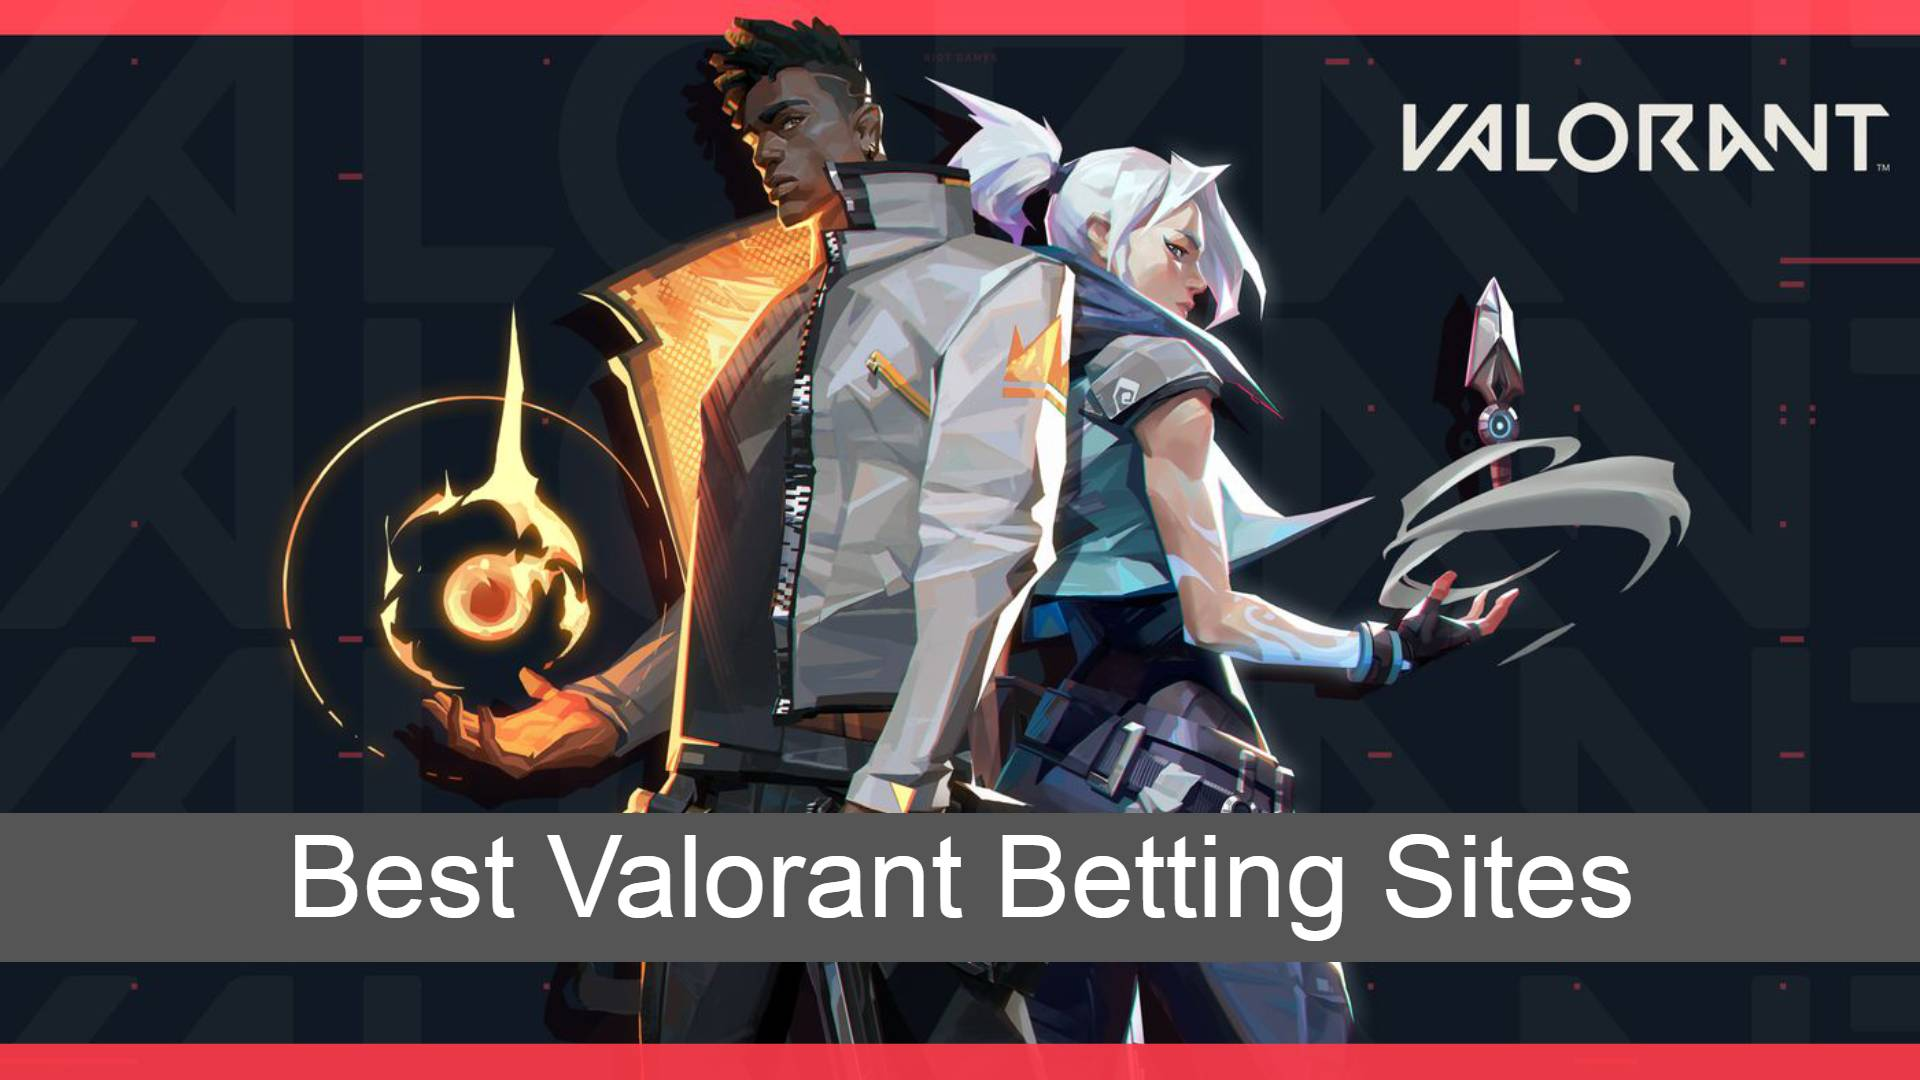 Valorant betting sites